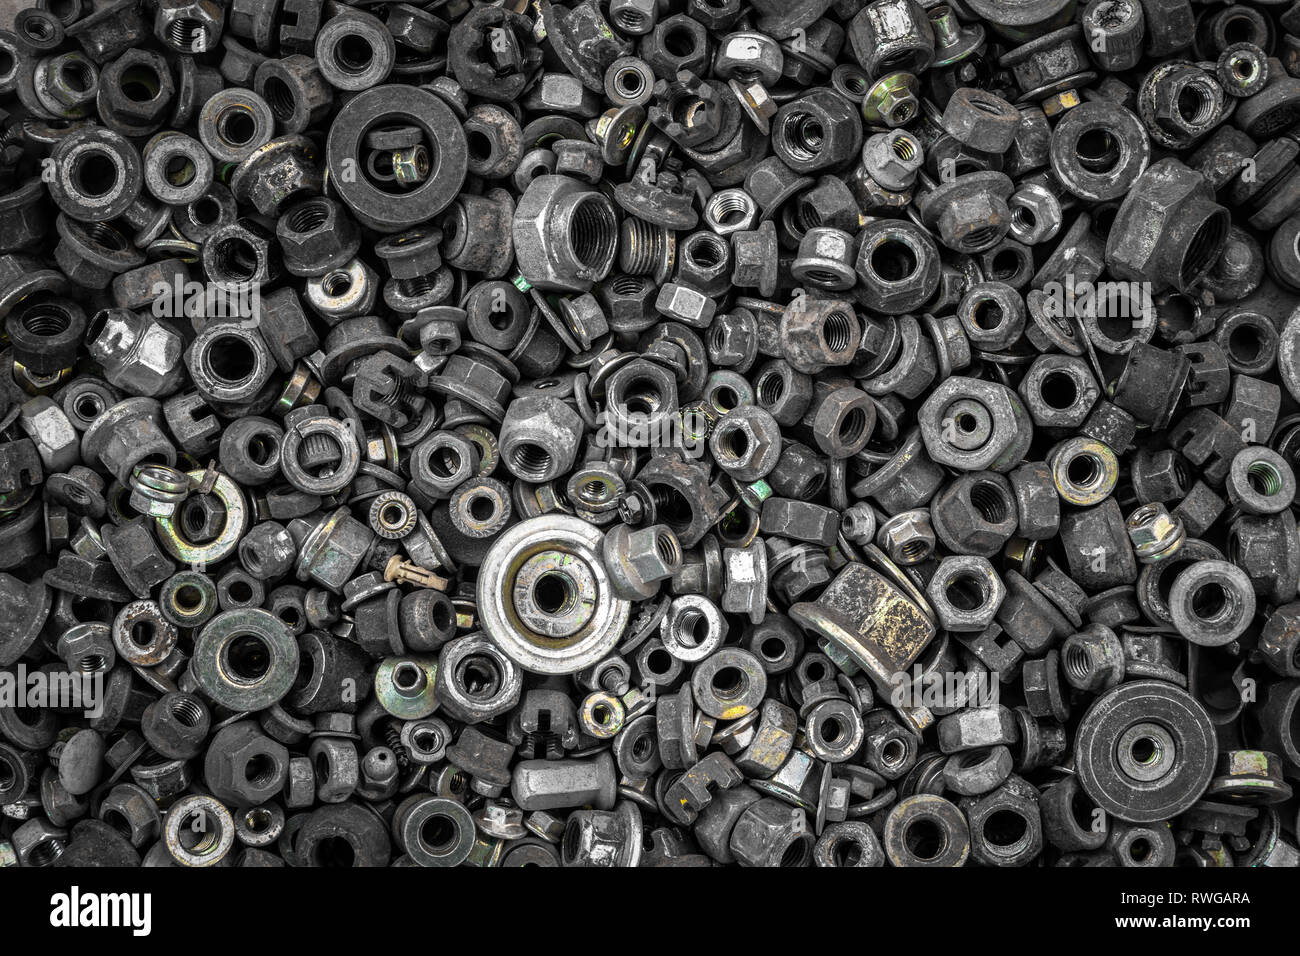 Flat Lay metal fasteners: washers, nuts, vinitiki, screws,, top view. Close-up Carpenter's Tool Kit - Stock Image